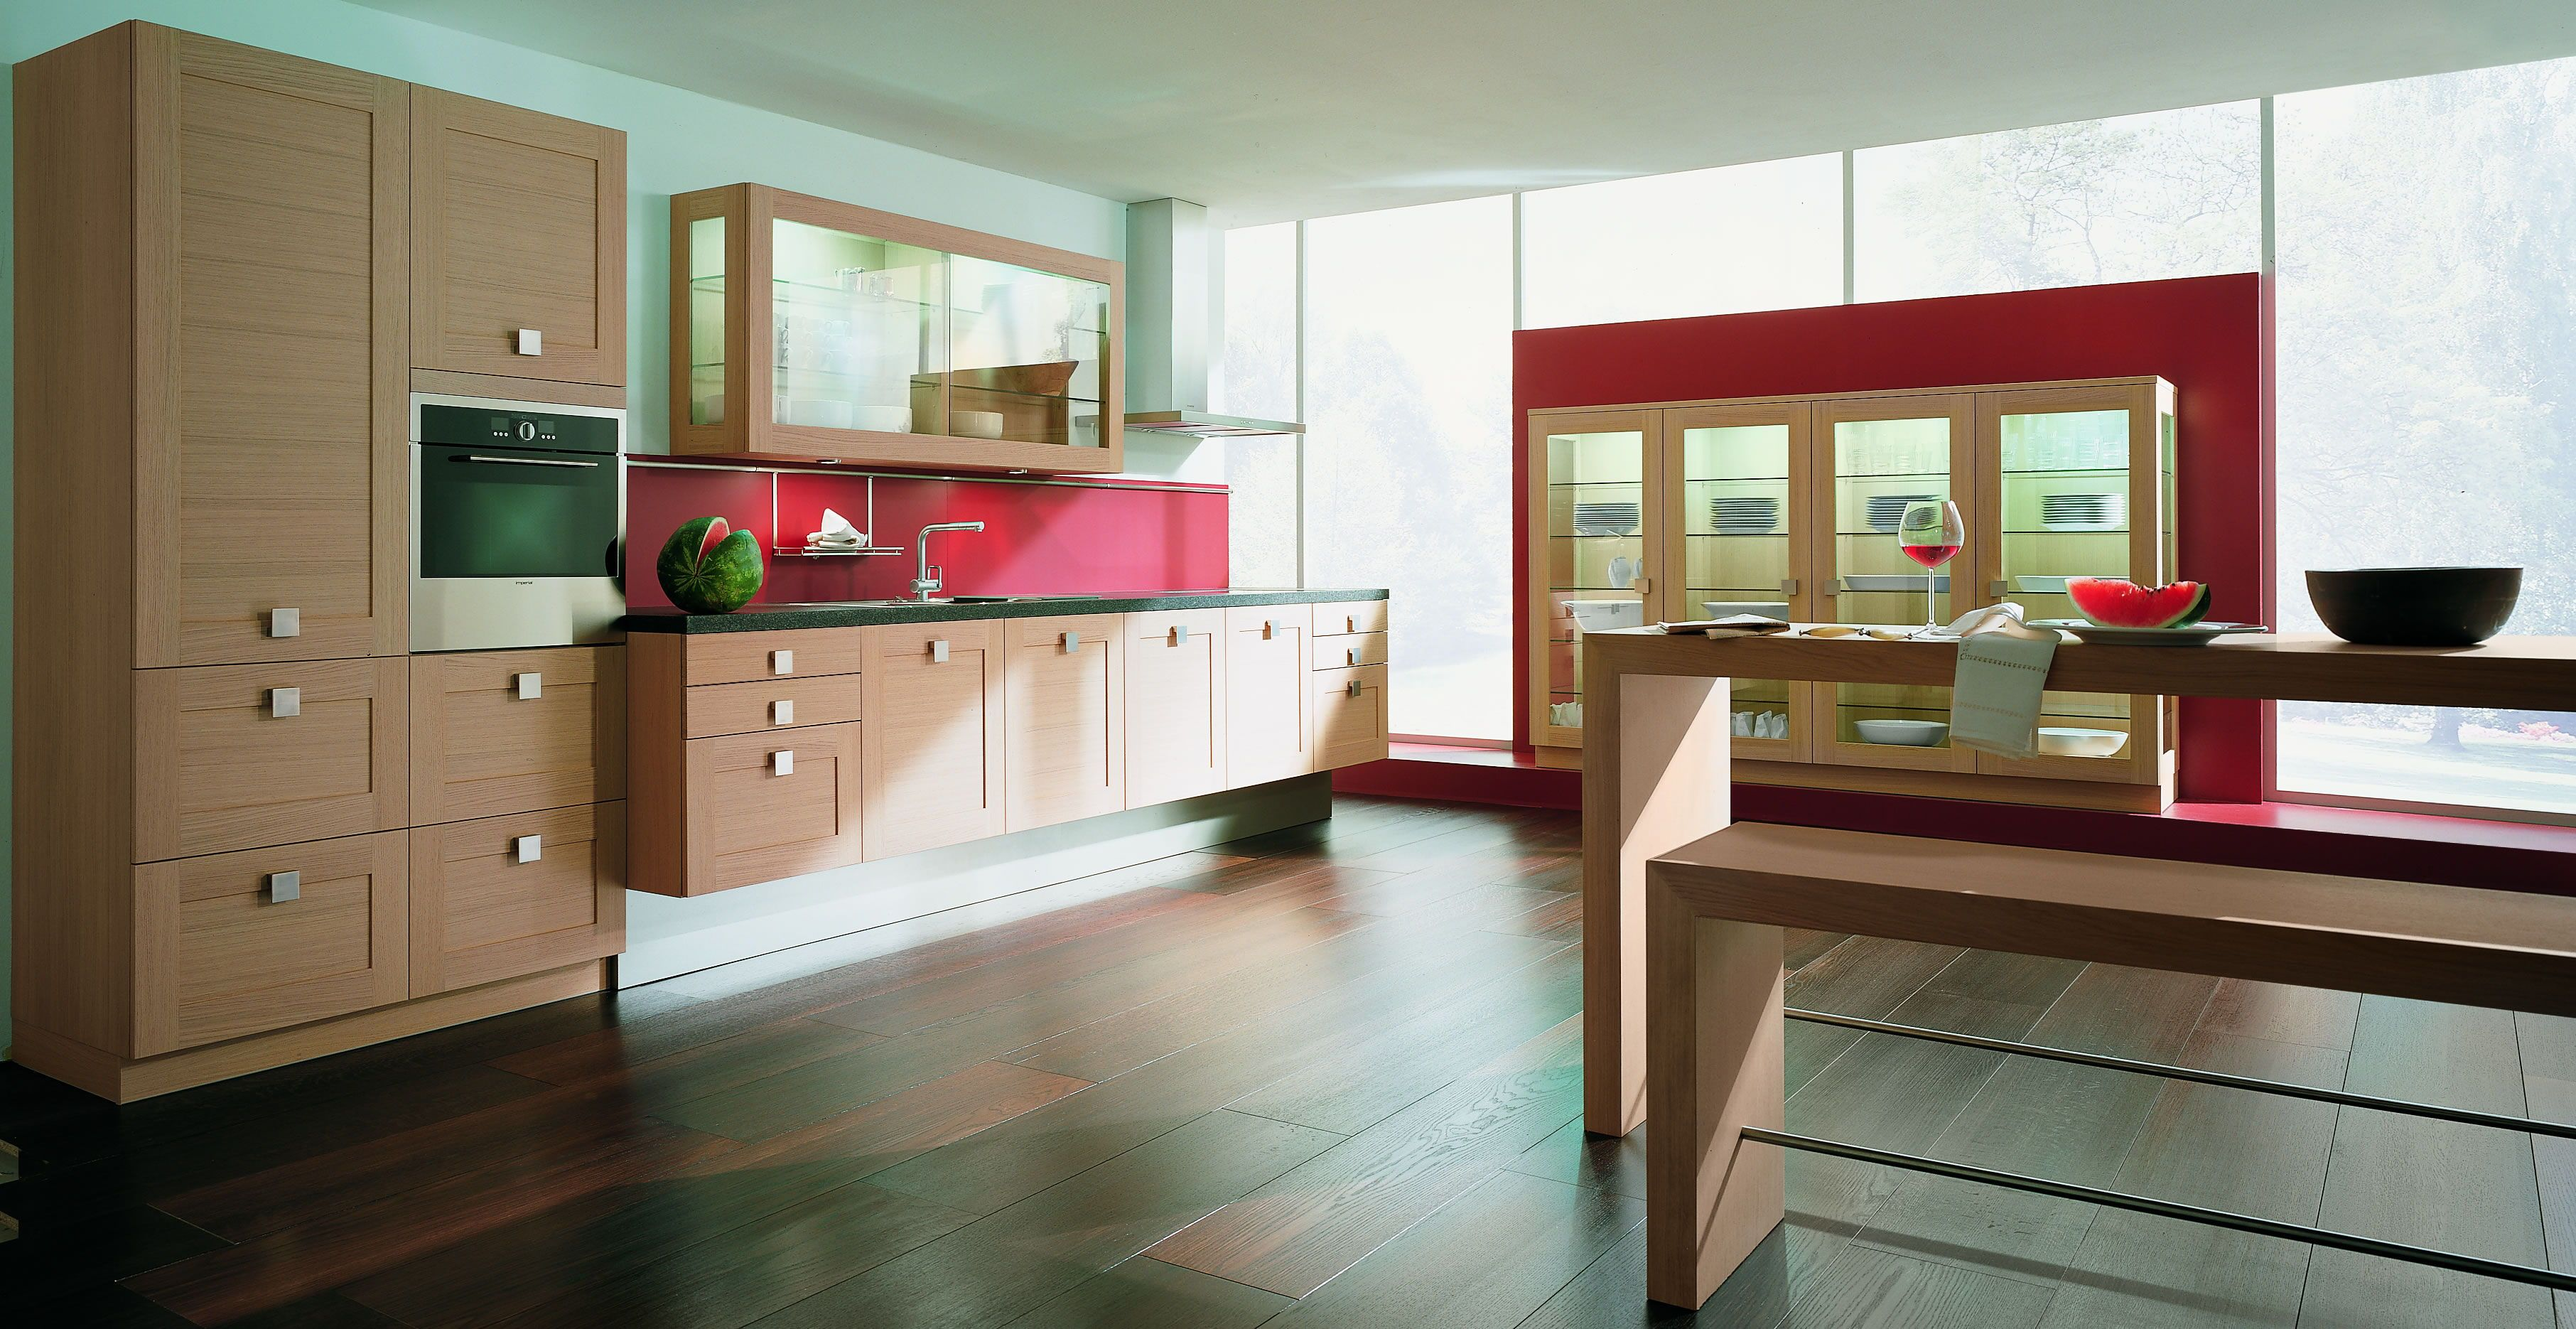 How About A Red Back Splash In Your Kitchen With A Red Accent Wall The Red Is Striking Interior Design Kitchen Kitchen Inspiration Design Kitchen Room Design